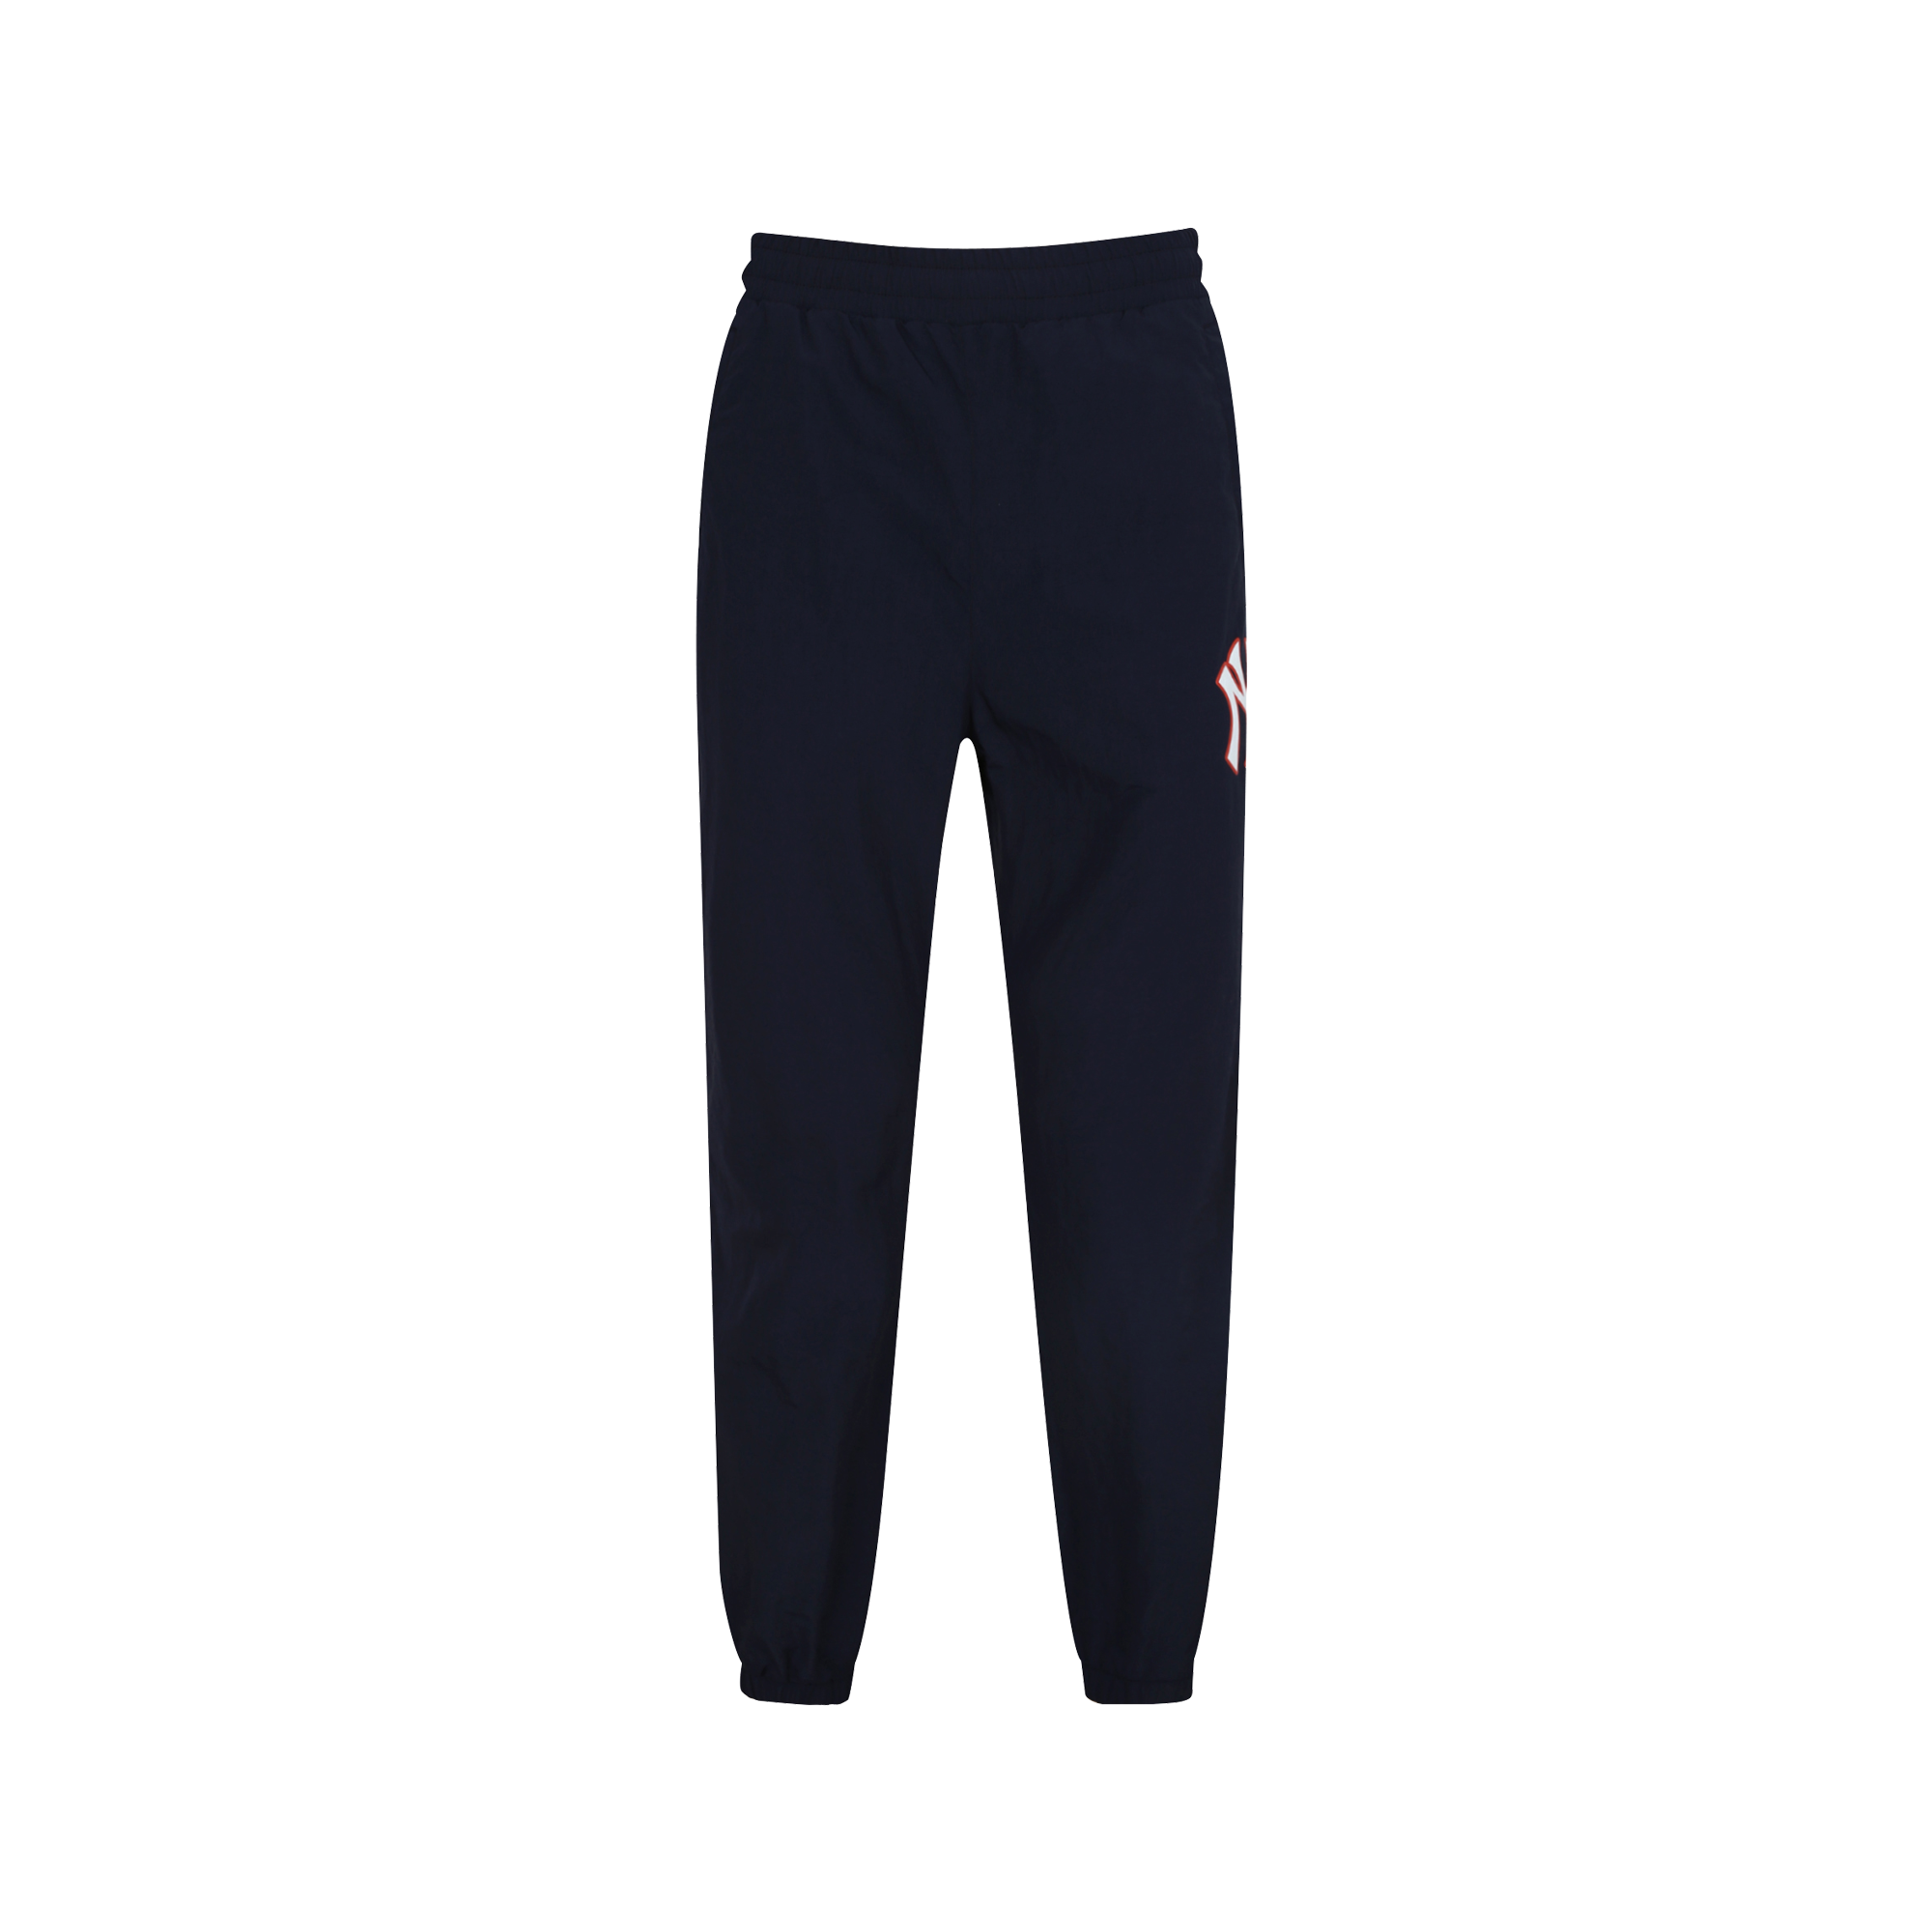 NEW YORK YANKEES BASIC TRAINING PANTS